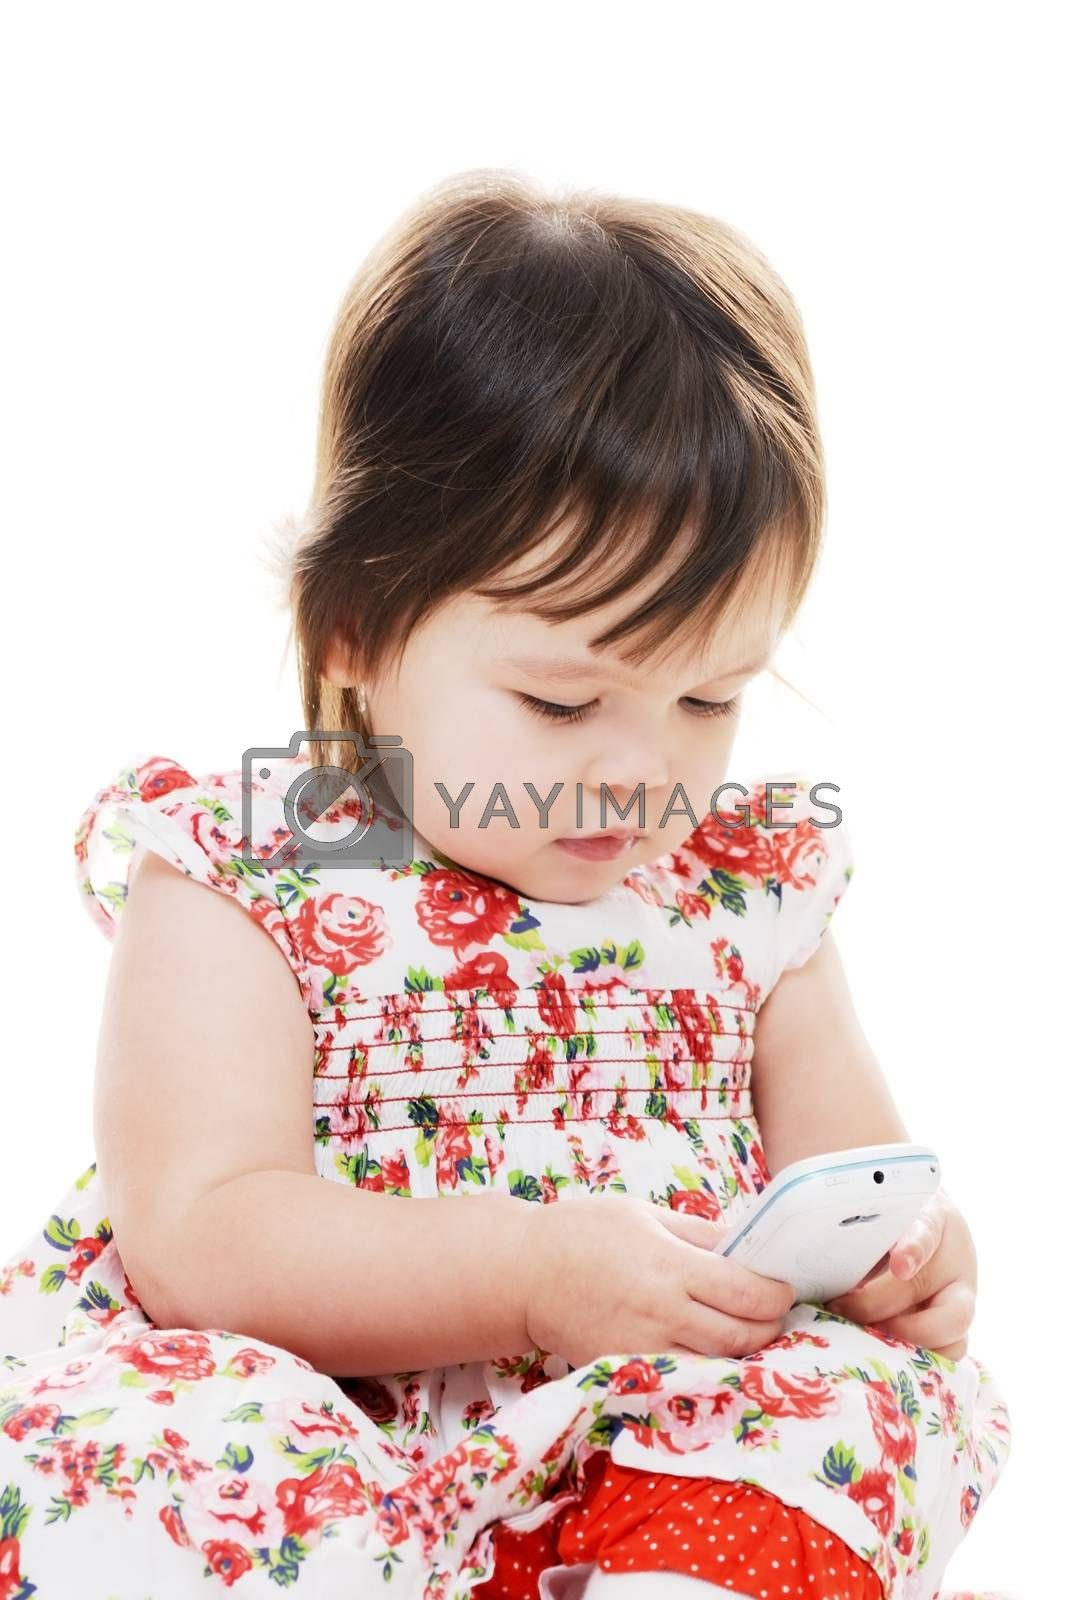 Young female girl texting on mobile phone